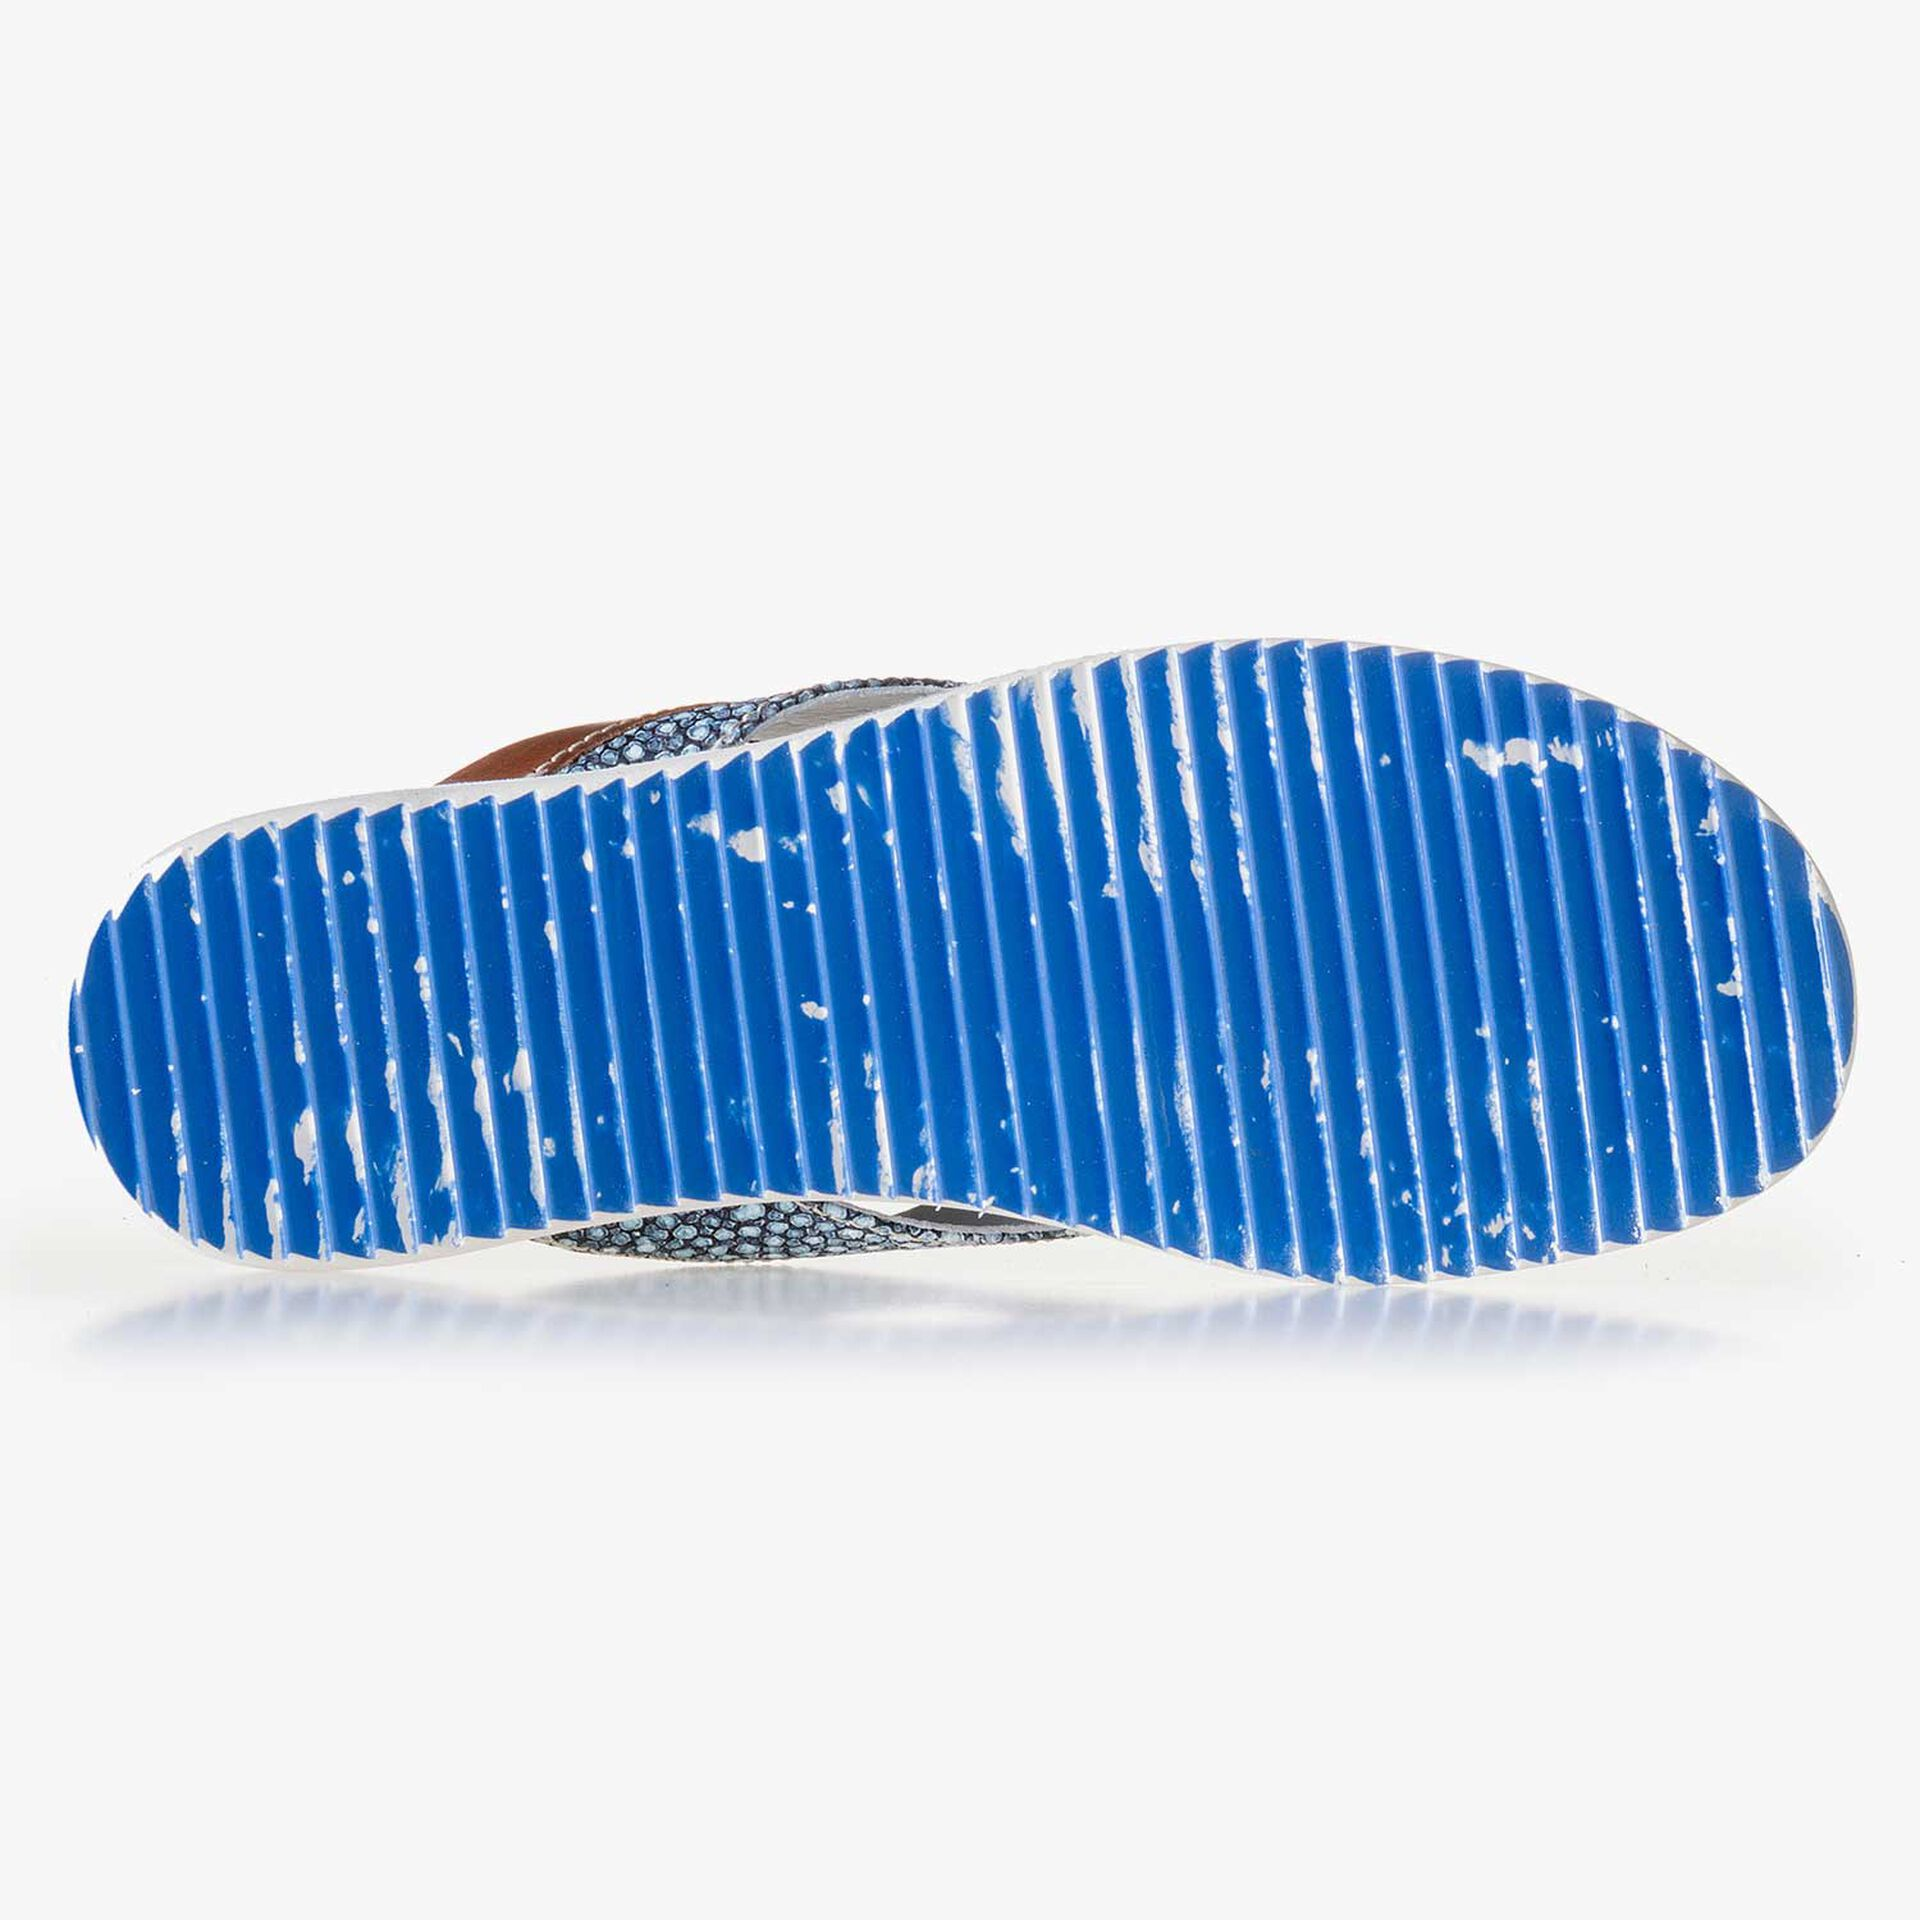 Blue, printed leather thong slipper